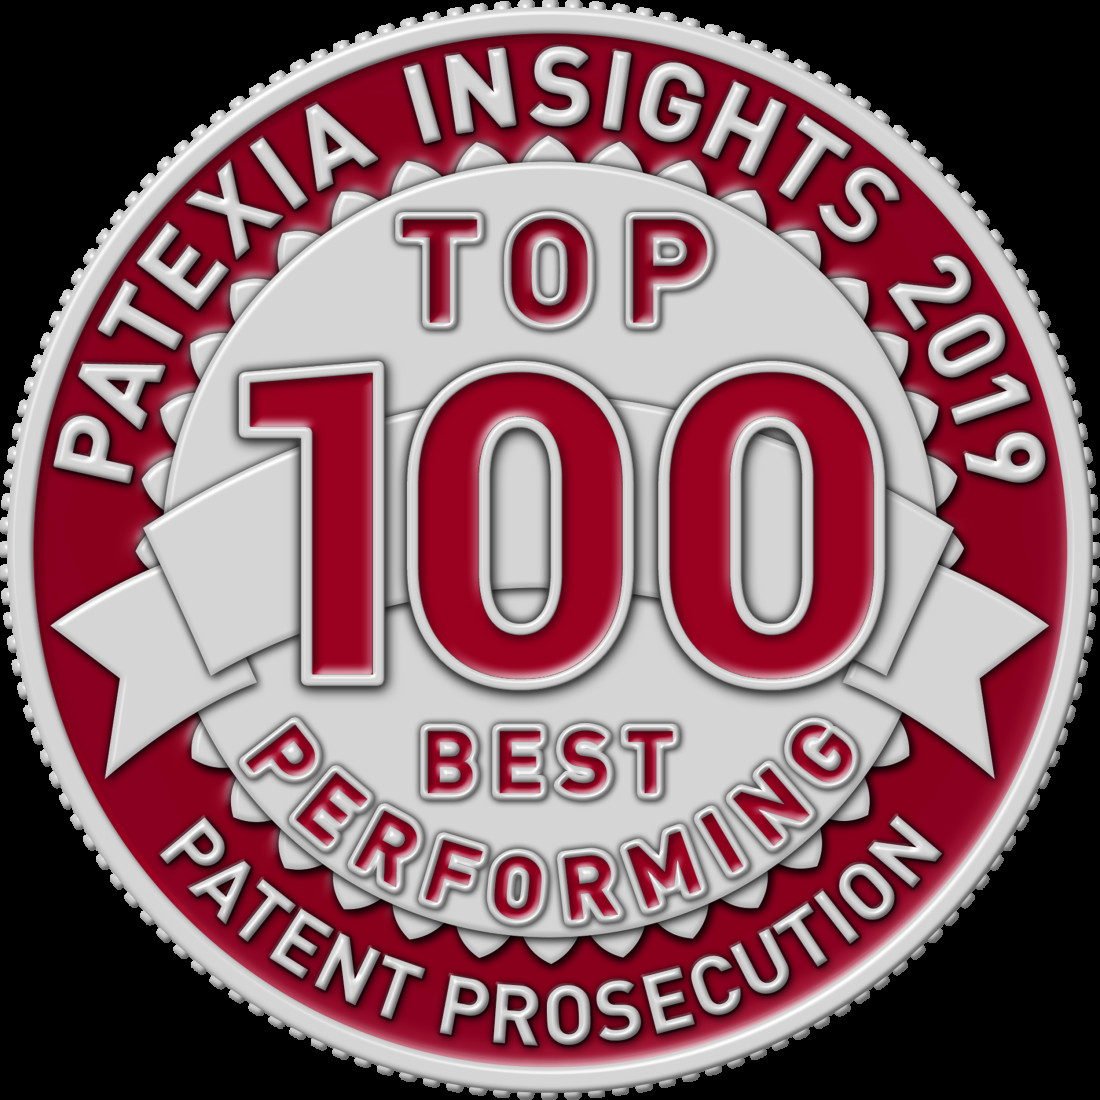 Patexia Patent Law Firm Badges 2019 logos